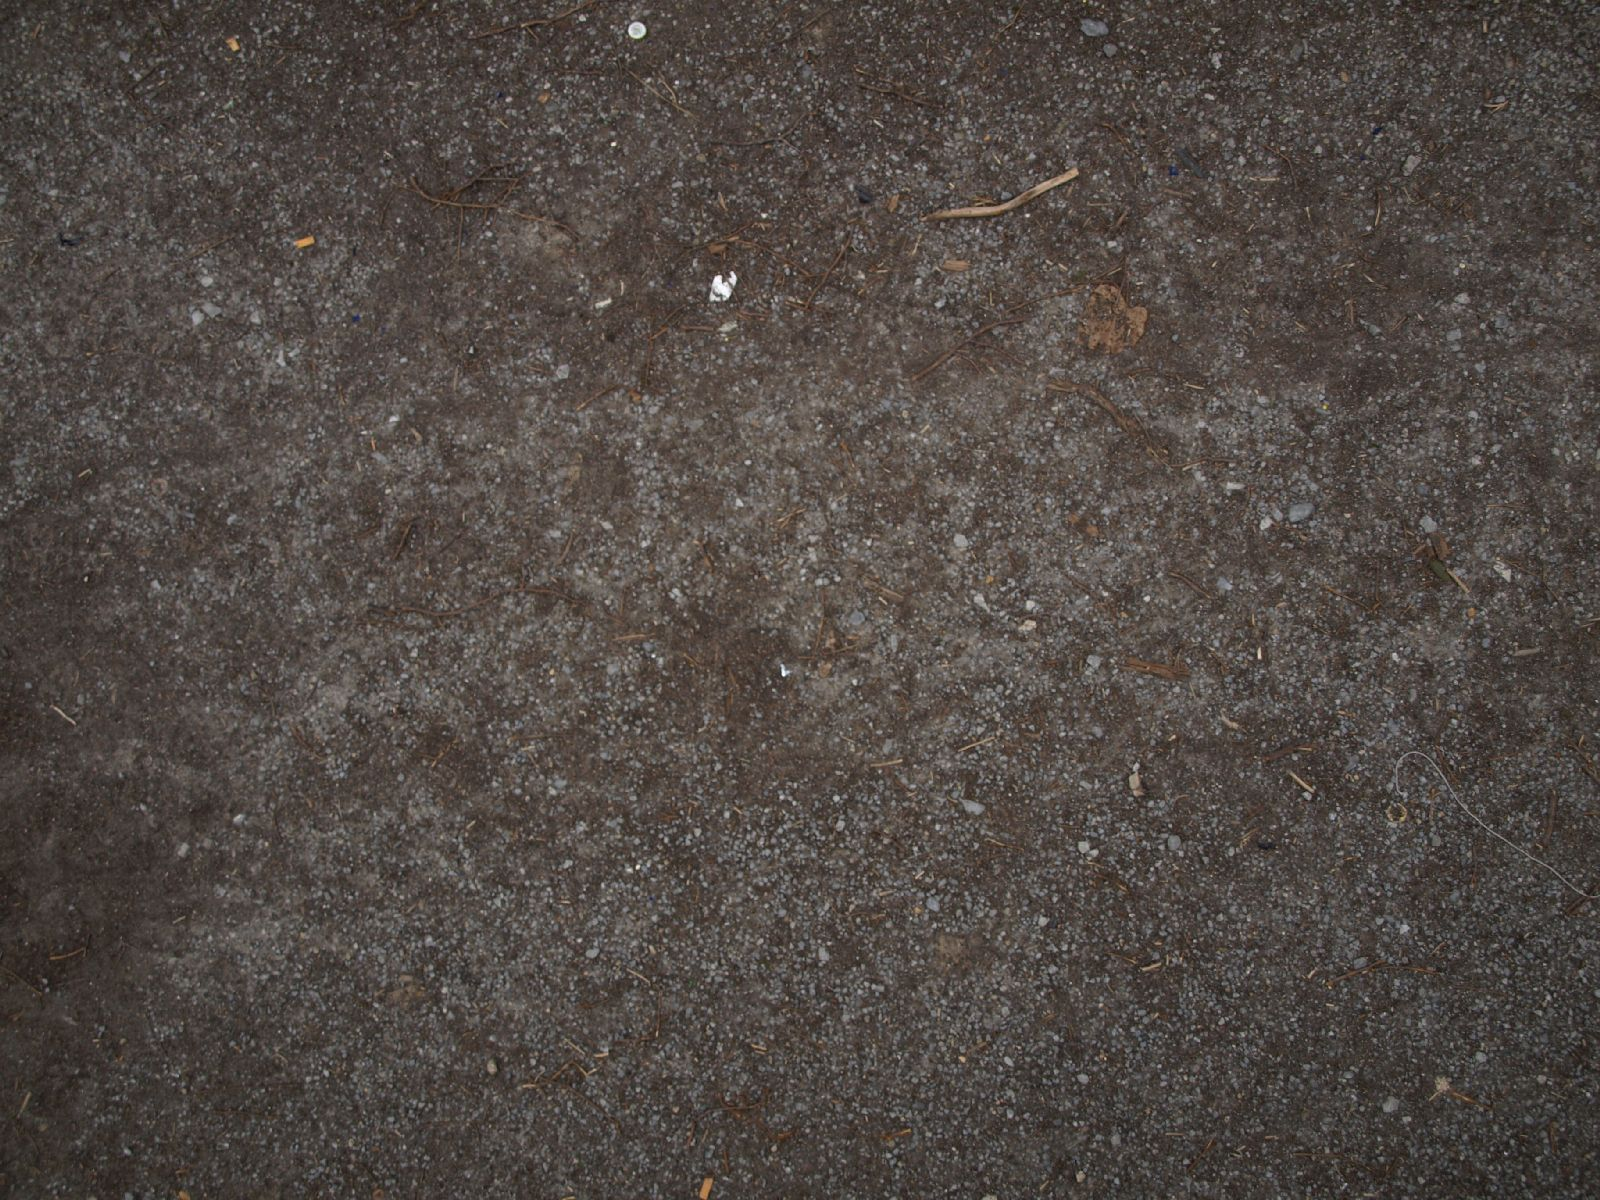 Ground-Nature_Texture_A_P4120997